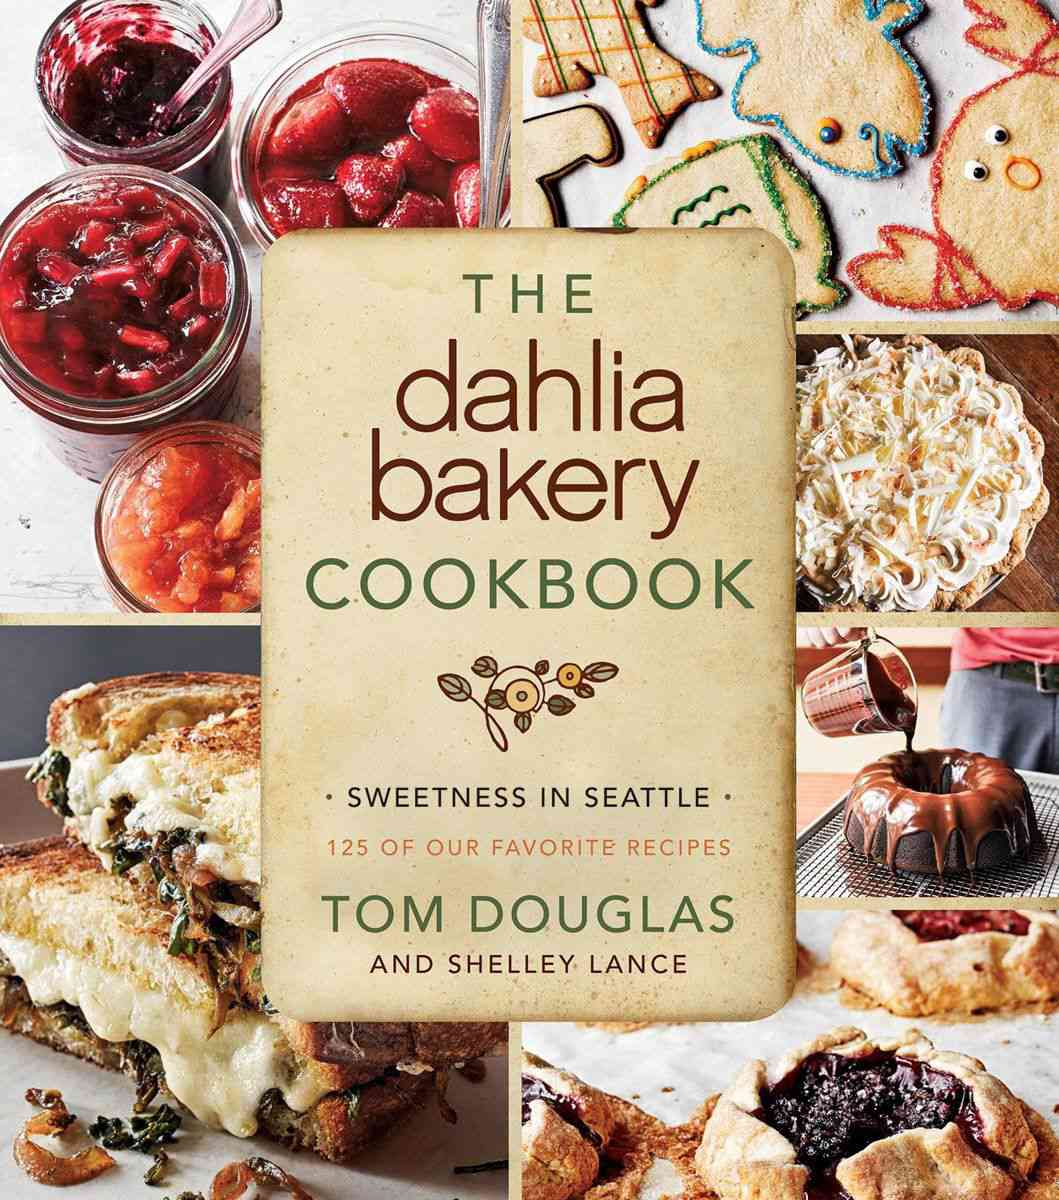 The Dahlia Bakery Cookbook by Tom Douglas and Shelley Lance